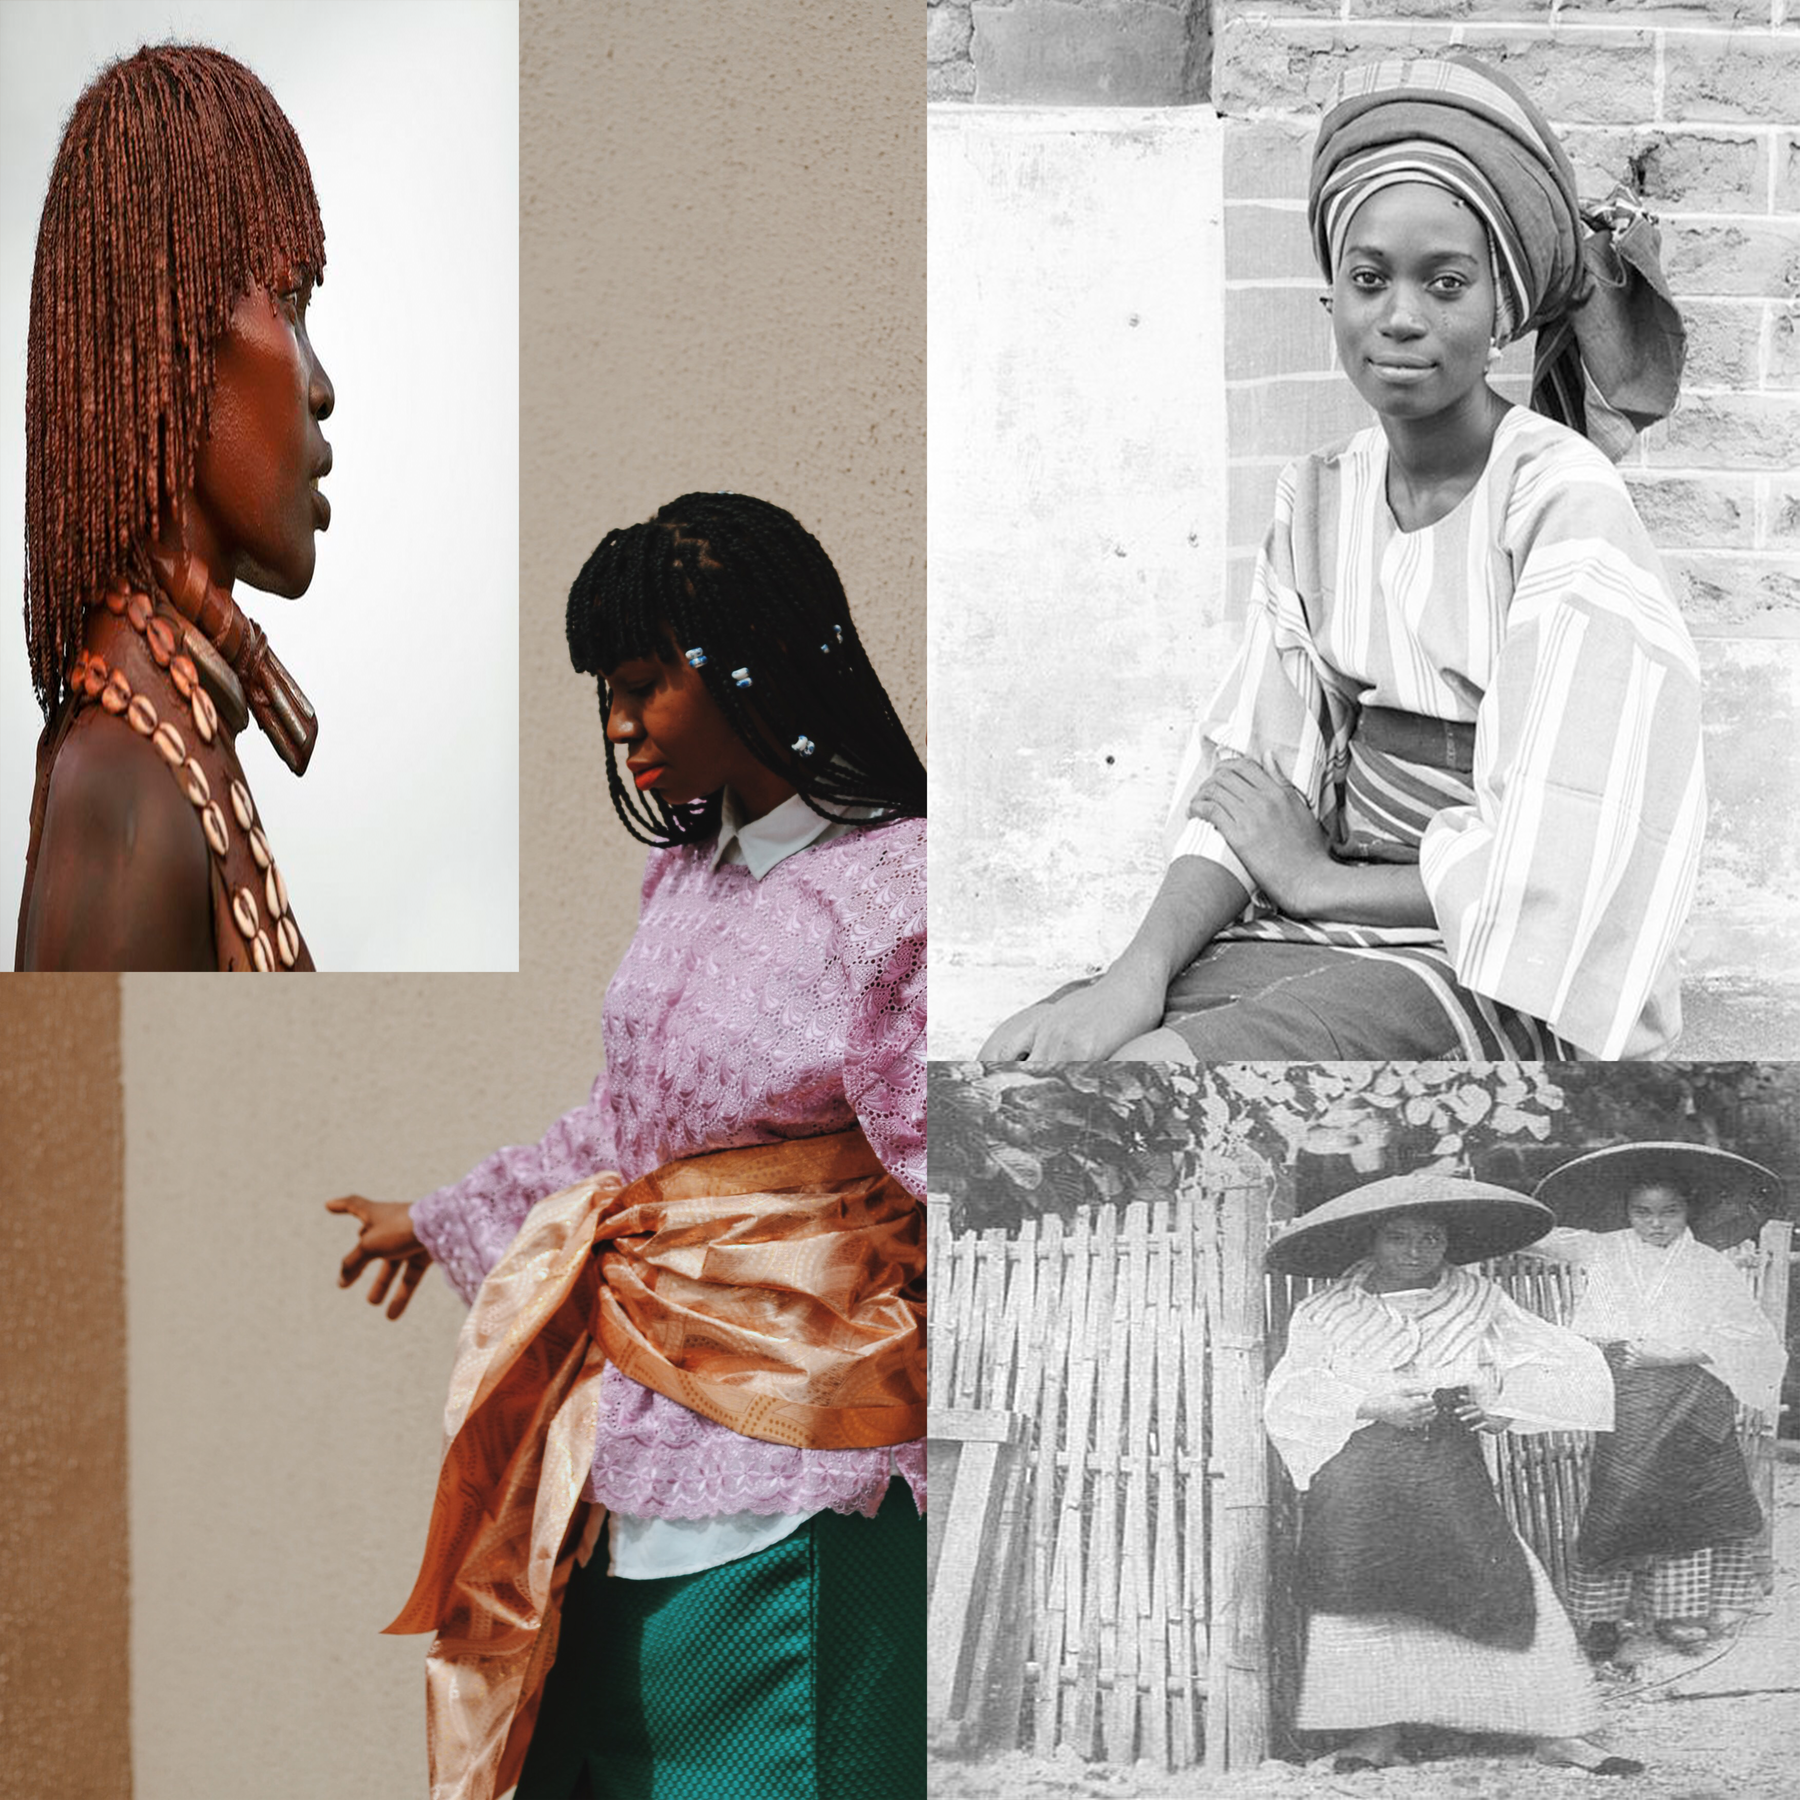 Inspired by these images Buba ( top right by Eliot Elisofon Lagos, Nigeria)which is a style of blouse accustomed to the Yorubas of western Nigeria. Bottom right- Old Philippines Womens fashion. Ph. unknown. Top left-my braid inspiration from the Hamer people of ethiopia,